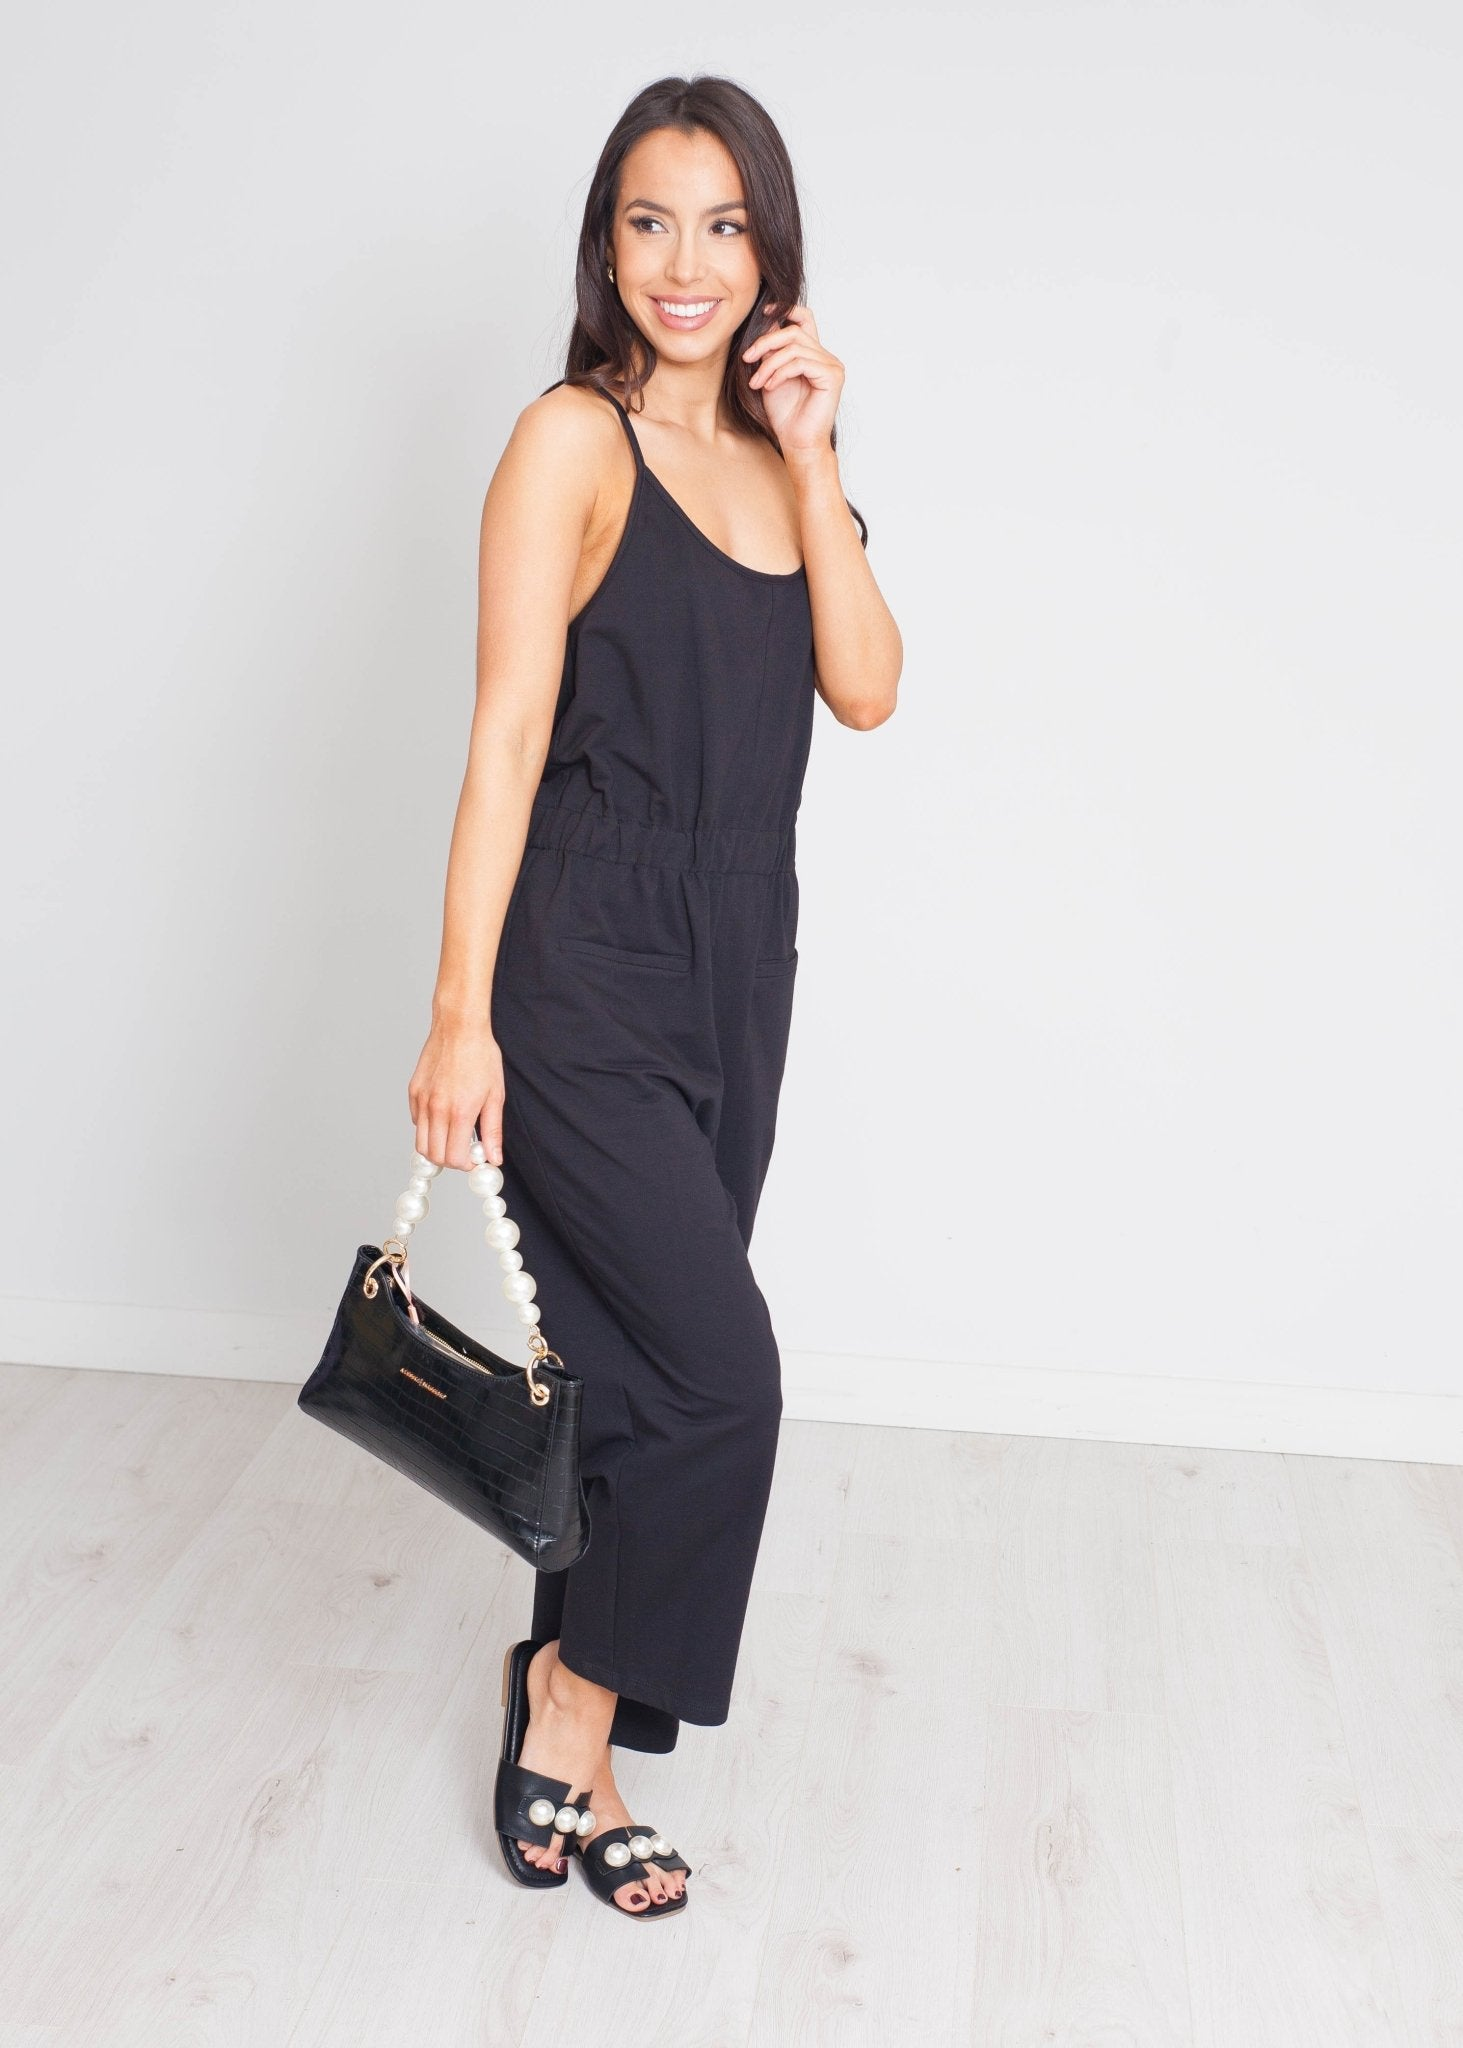 Sophia Drawstring Waist Jumpsuit In Black - The Walk in Wardrobe